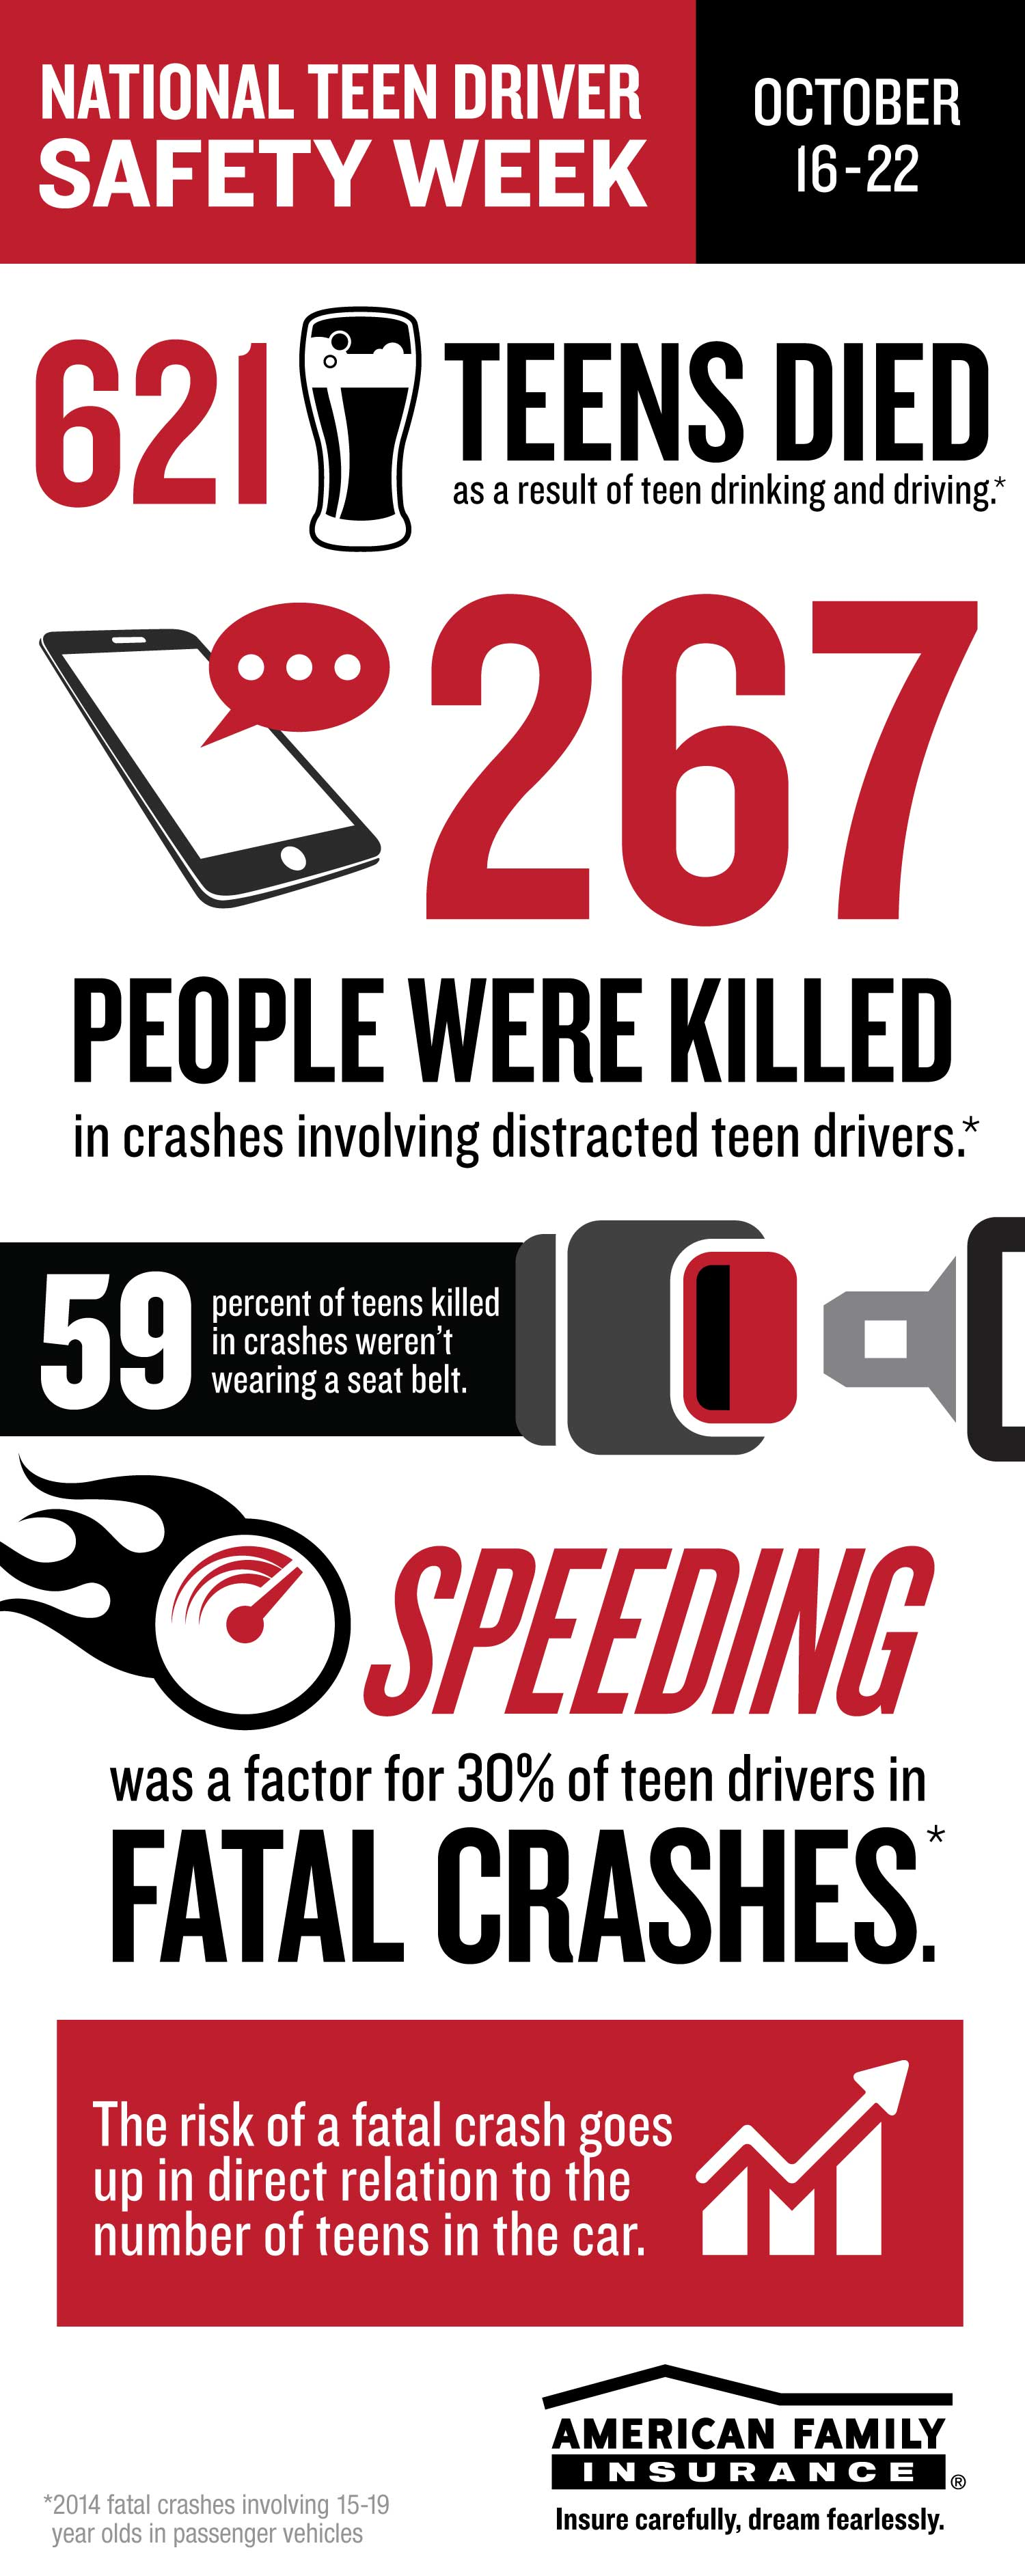 teen-driver-safety-week-750x1885.jpg